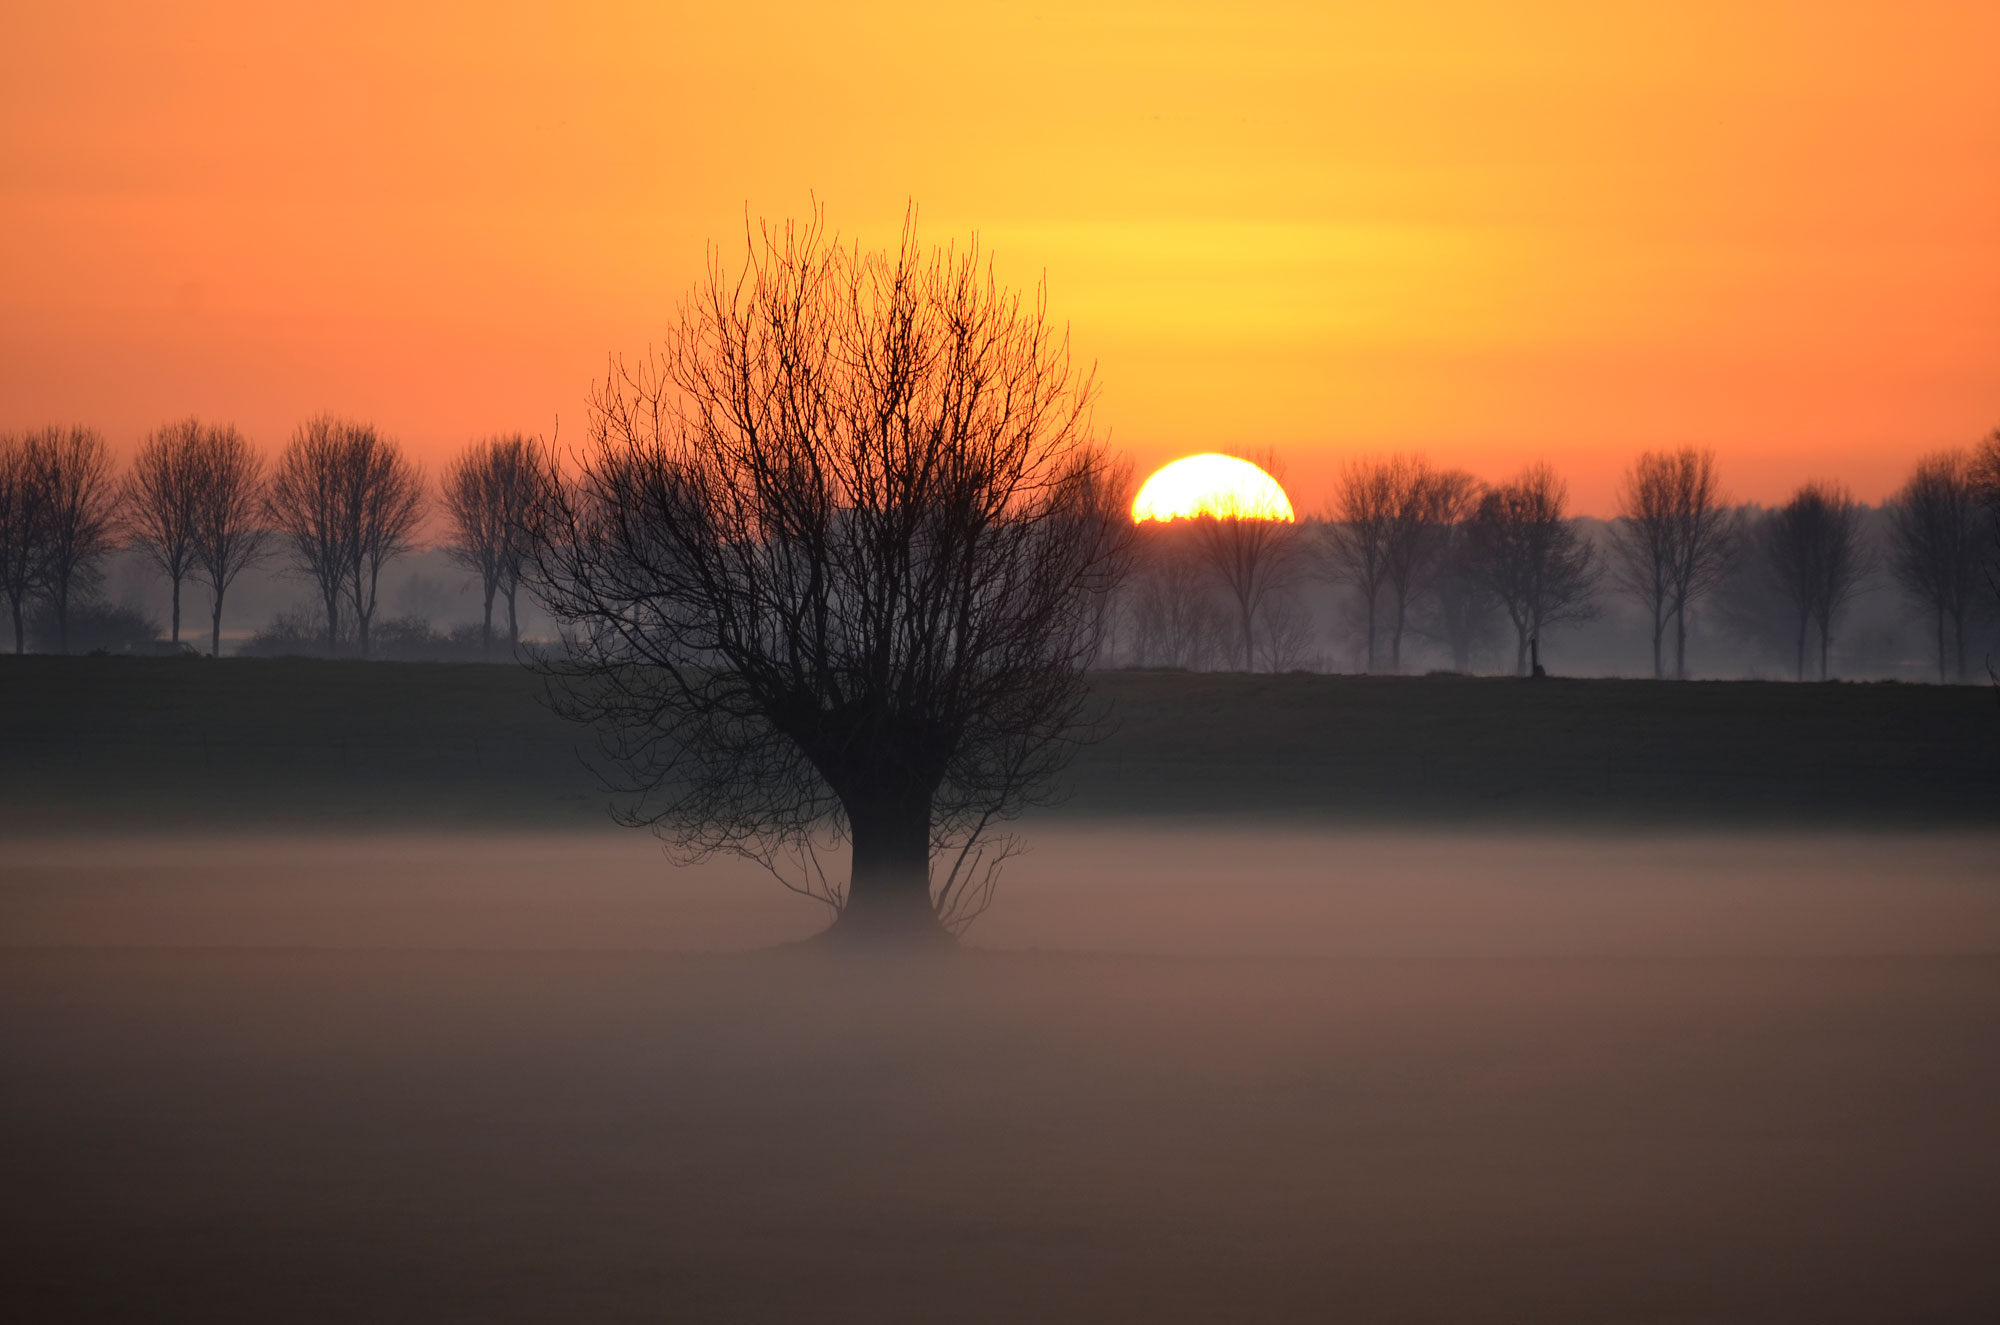 Winterzon in mistig landschap